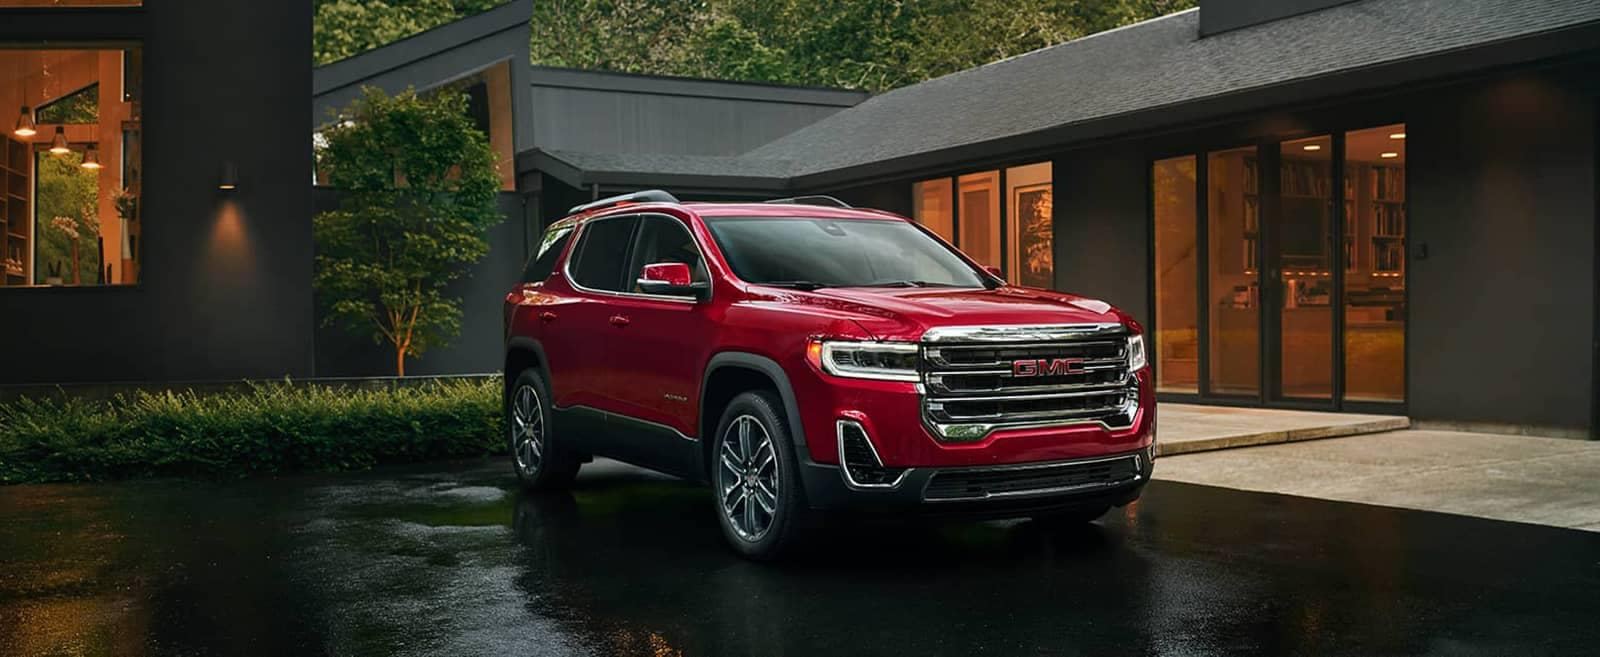 Red 2020 GMC Acadia Parked in front of a House